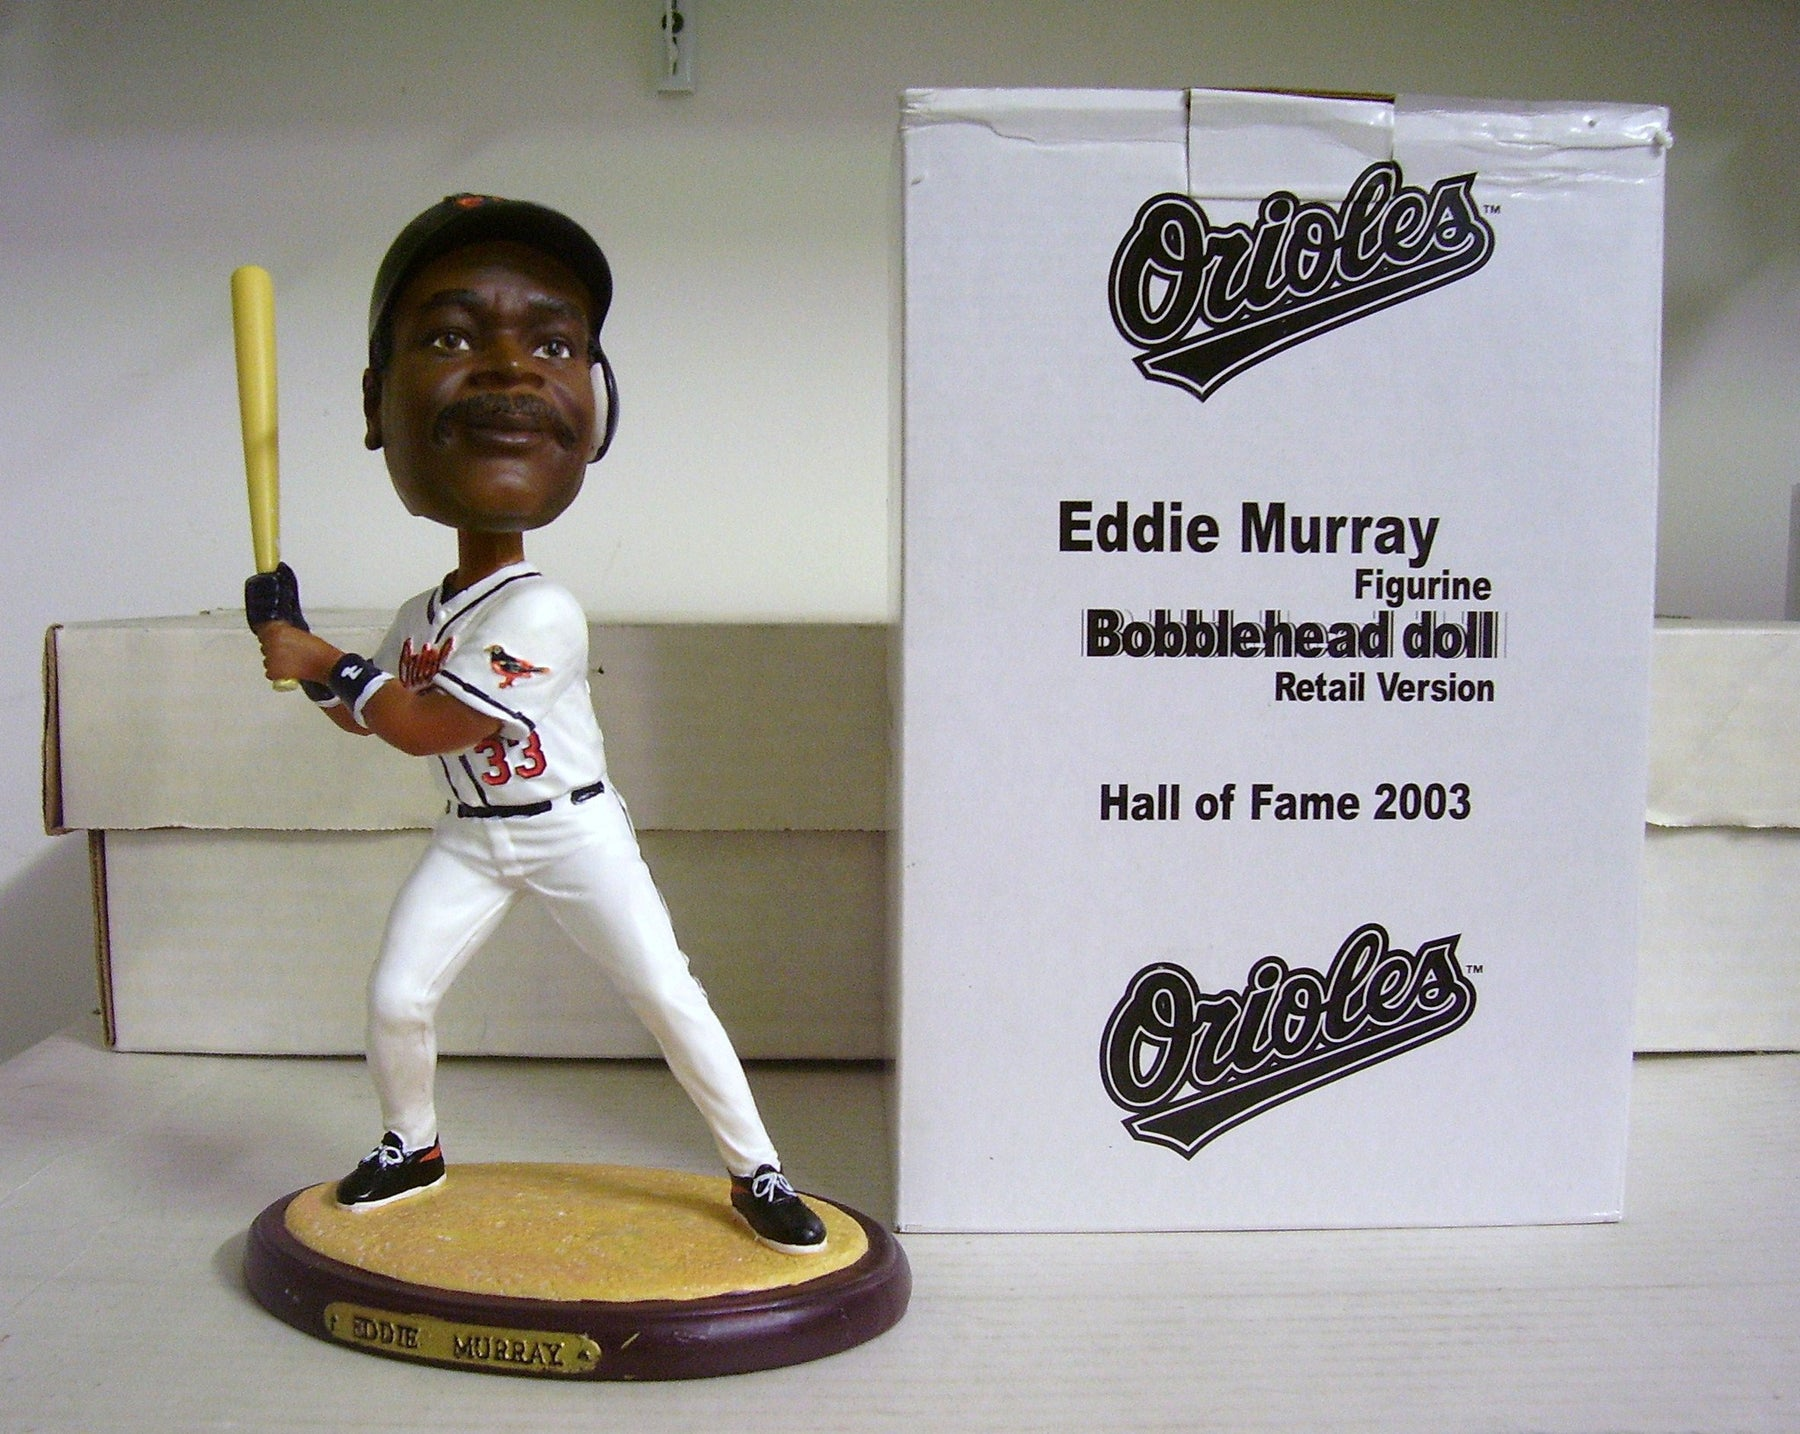 Eddie Murray Bobblehead - BobblesGalore